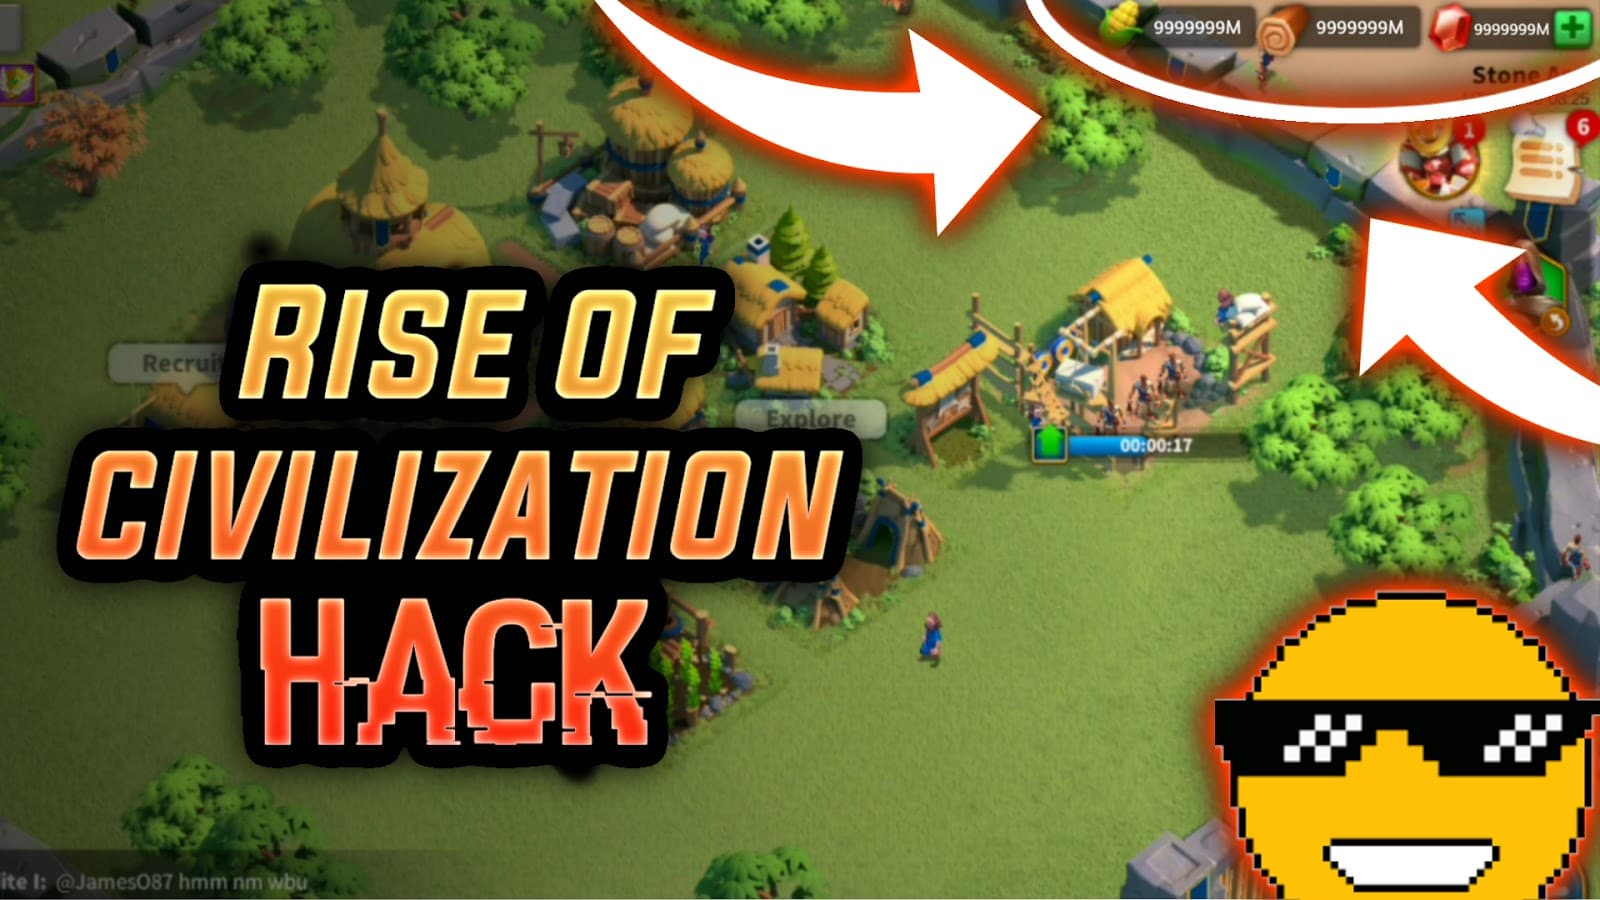 rise of civilizations hack apk